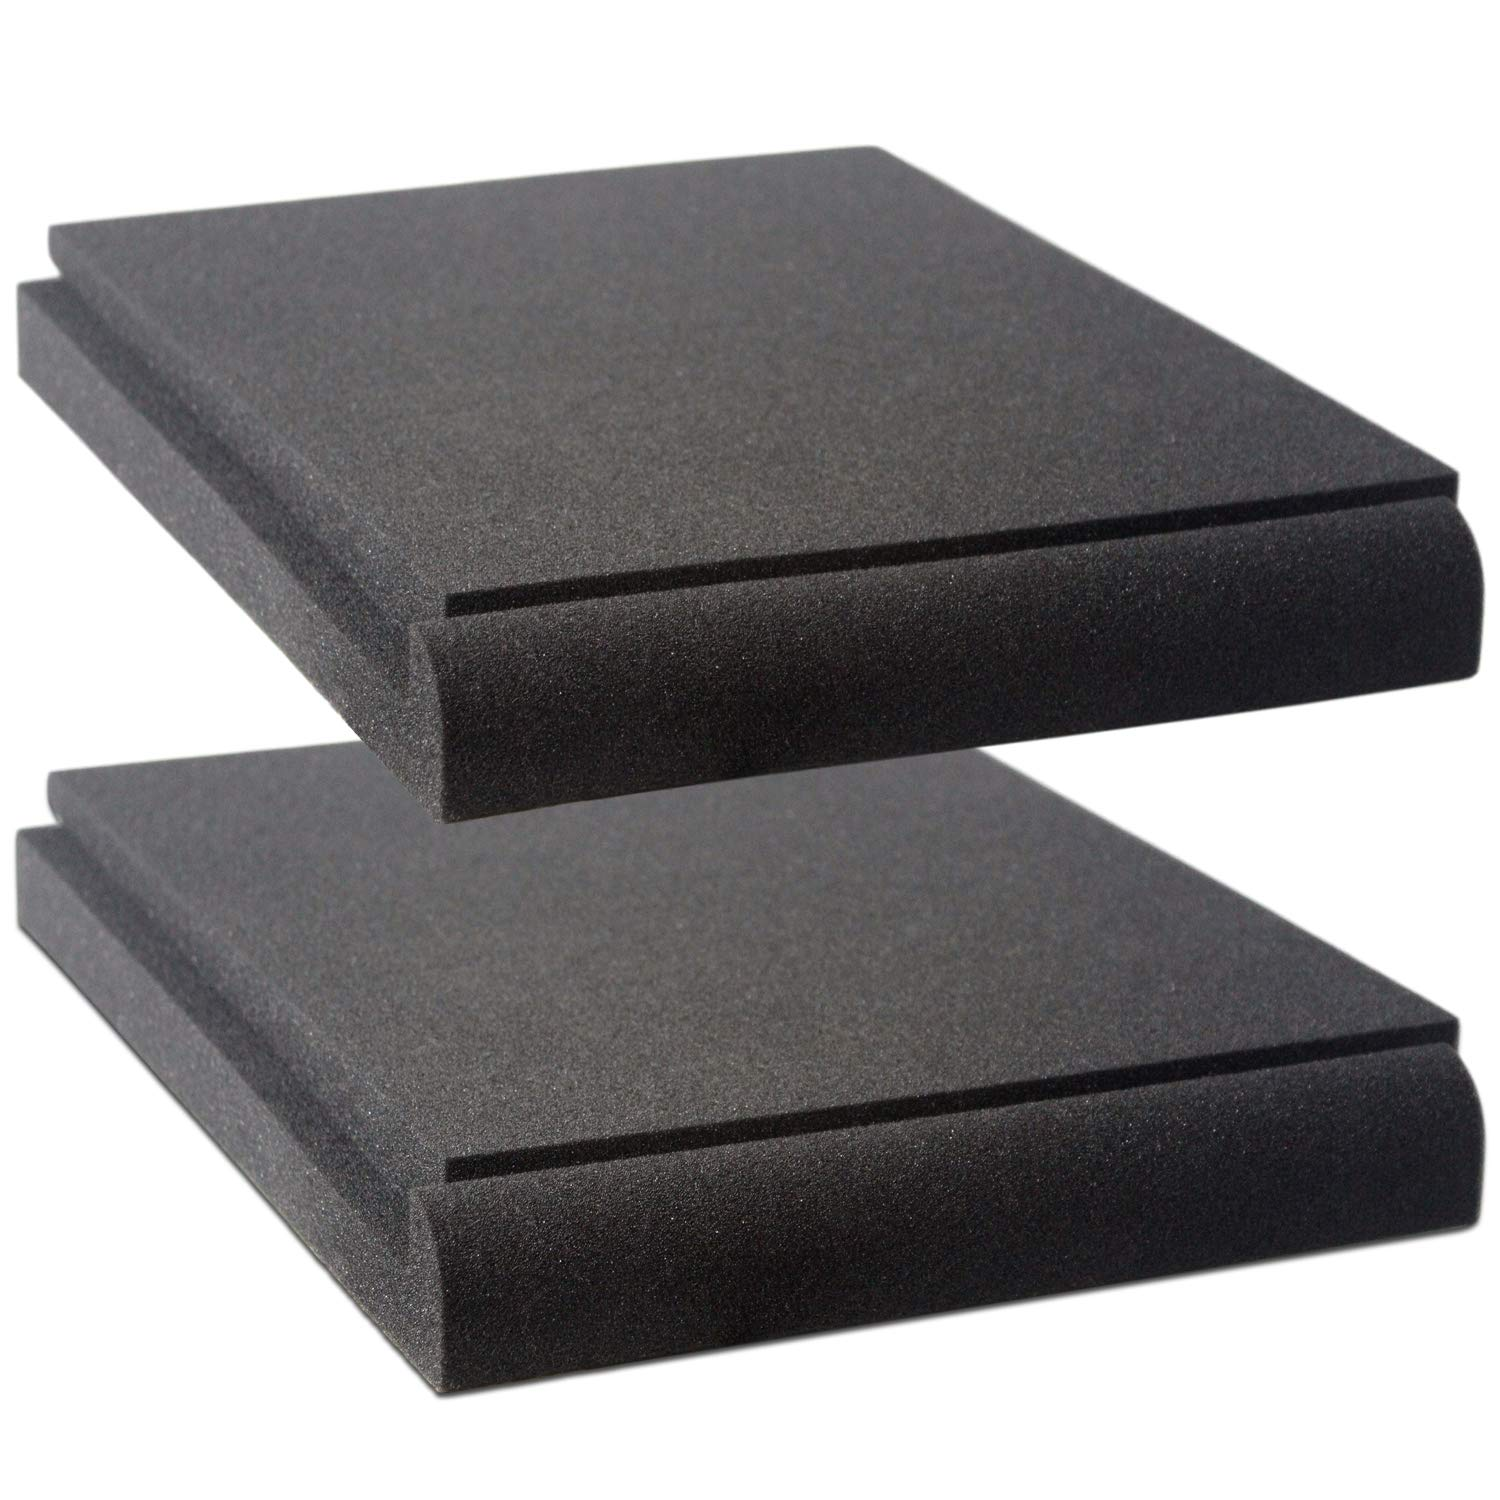 Studio Monitor Isolation Pads by VocalBeat - Suitable for 6.5'' - 8'' inch Speakers - High-Density Acoustic Foam for Significant Sound Improvement - Prevent Vibrations and Fits most Stands - 2 Pads